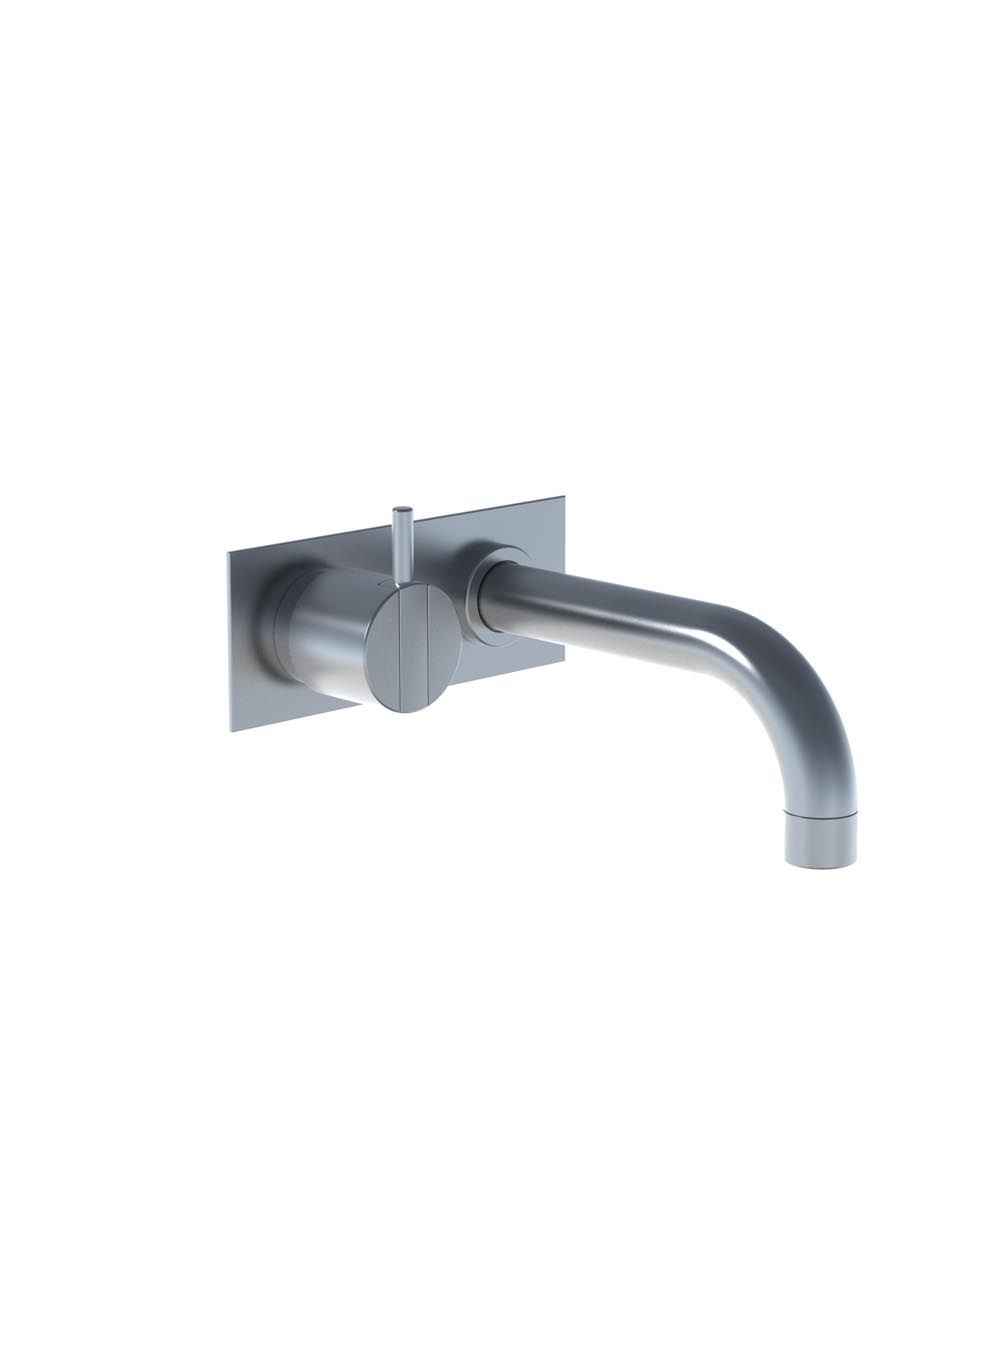 Taps and accessories in timeless Scandinavian design | plumbing ...